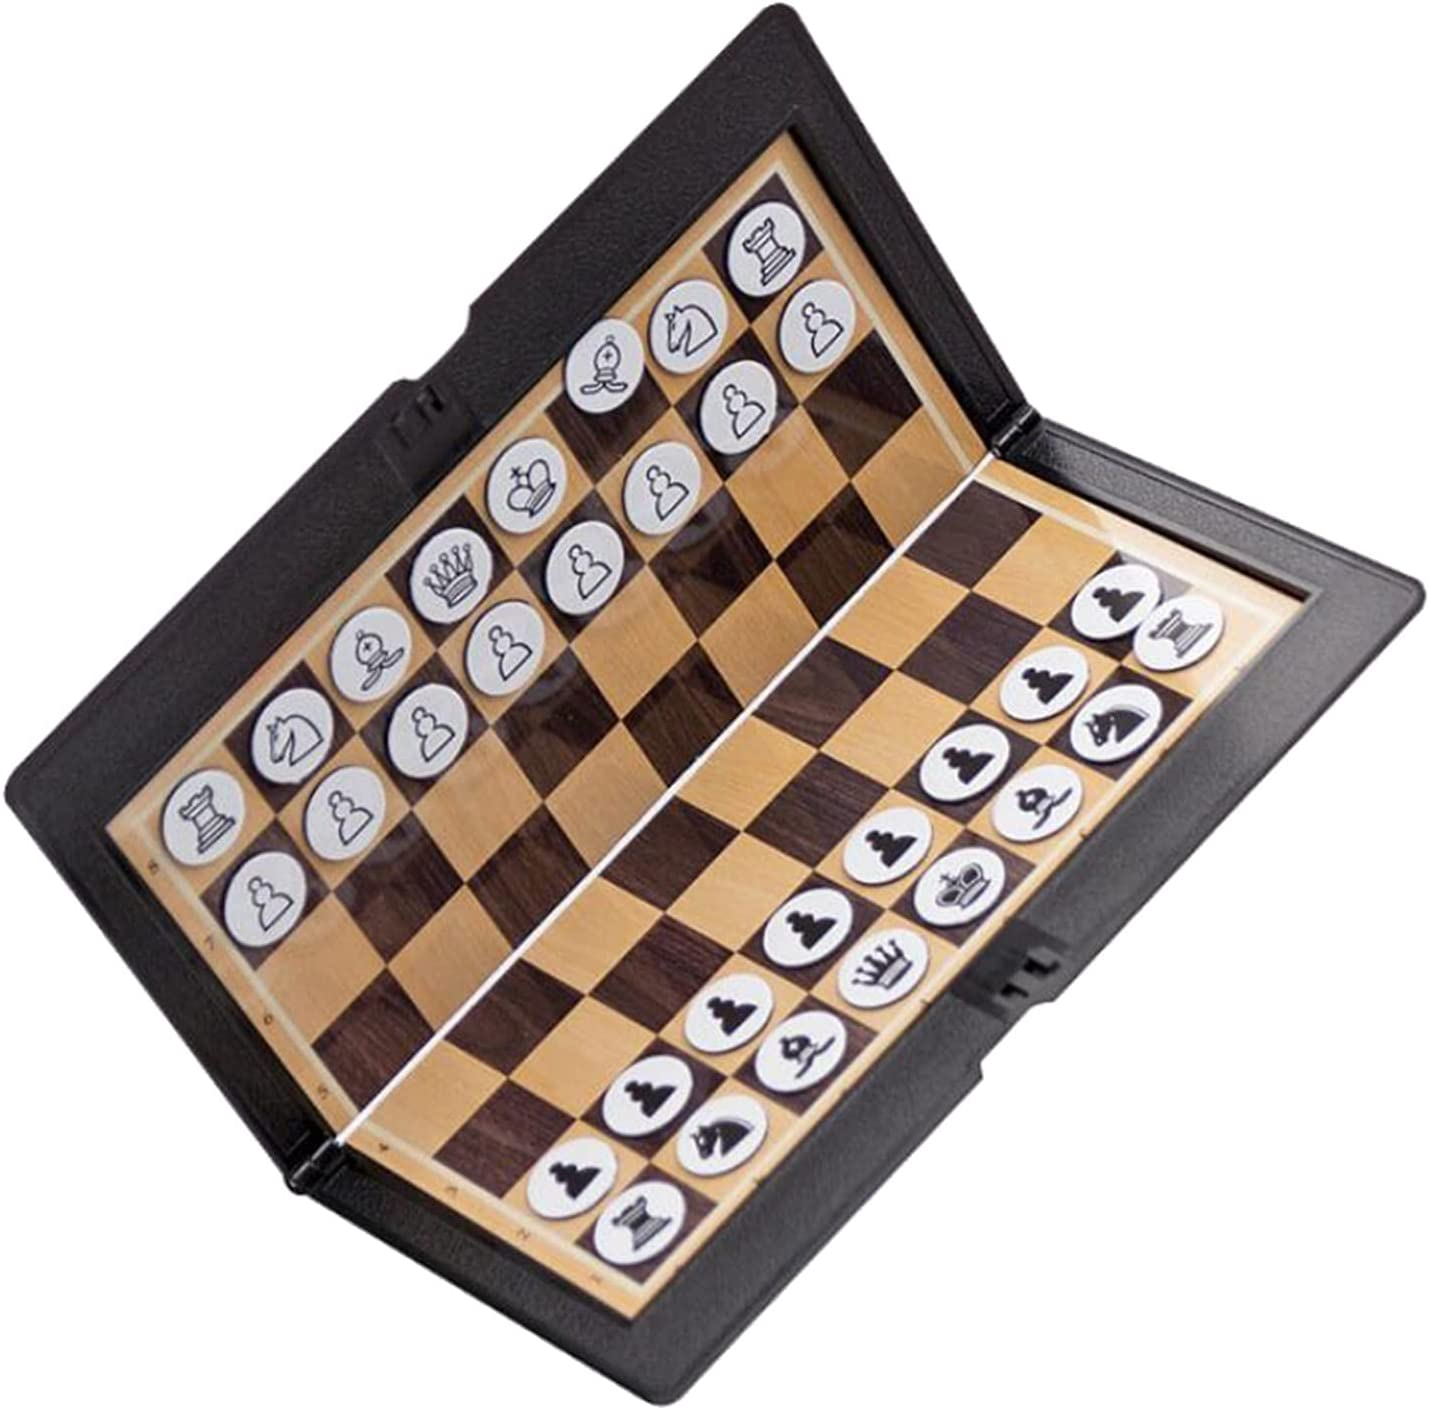 LTGJJ Chess Set Max 48% OFF Board Game Mini Wa Foldable Spring new work one after another Chessboard